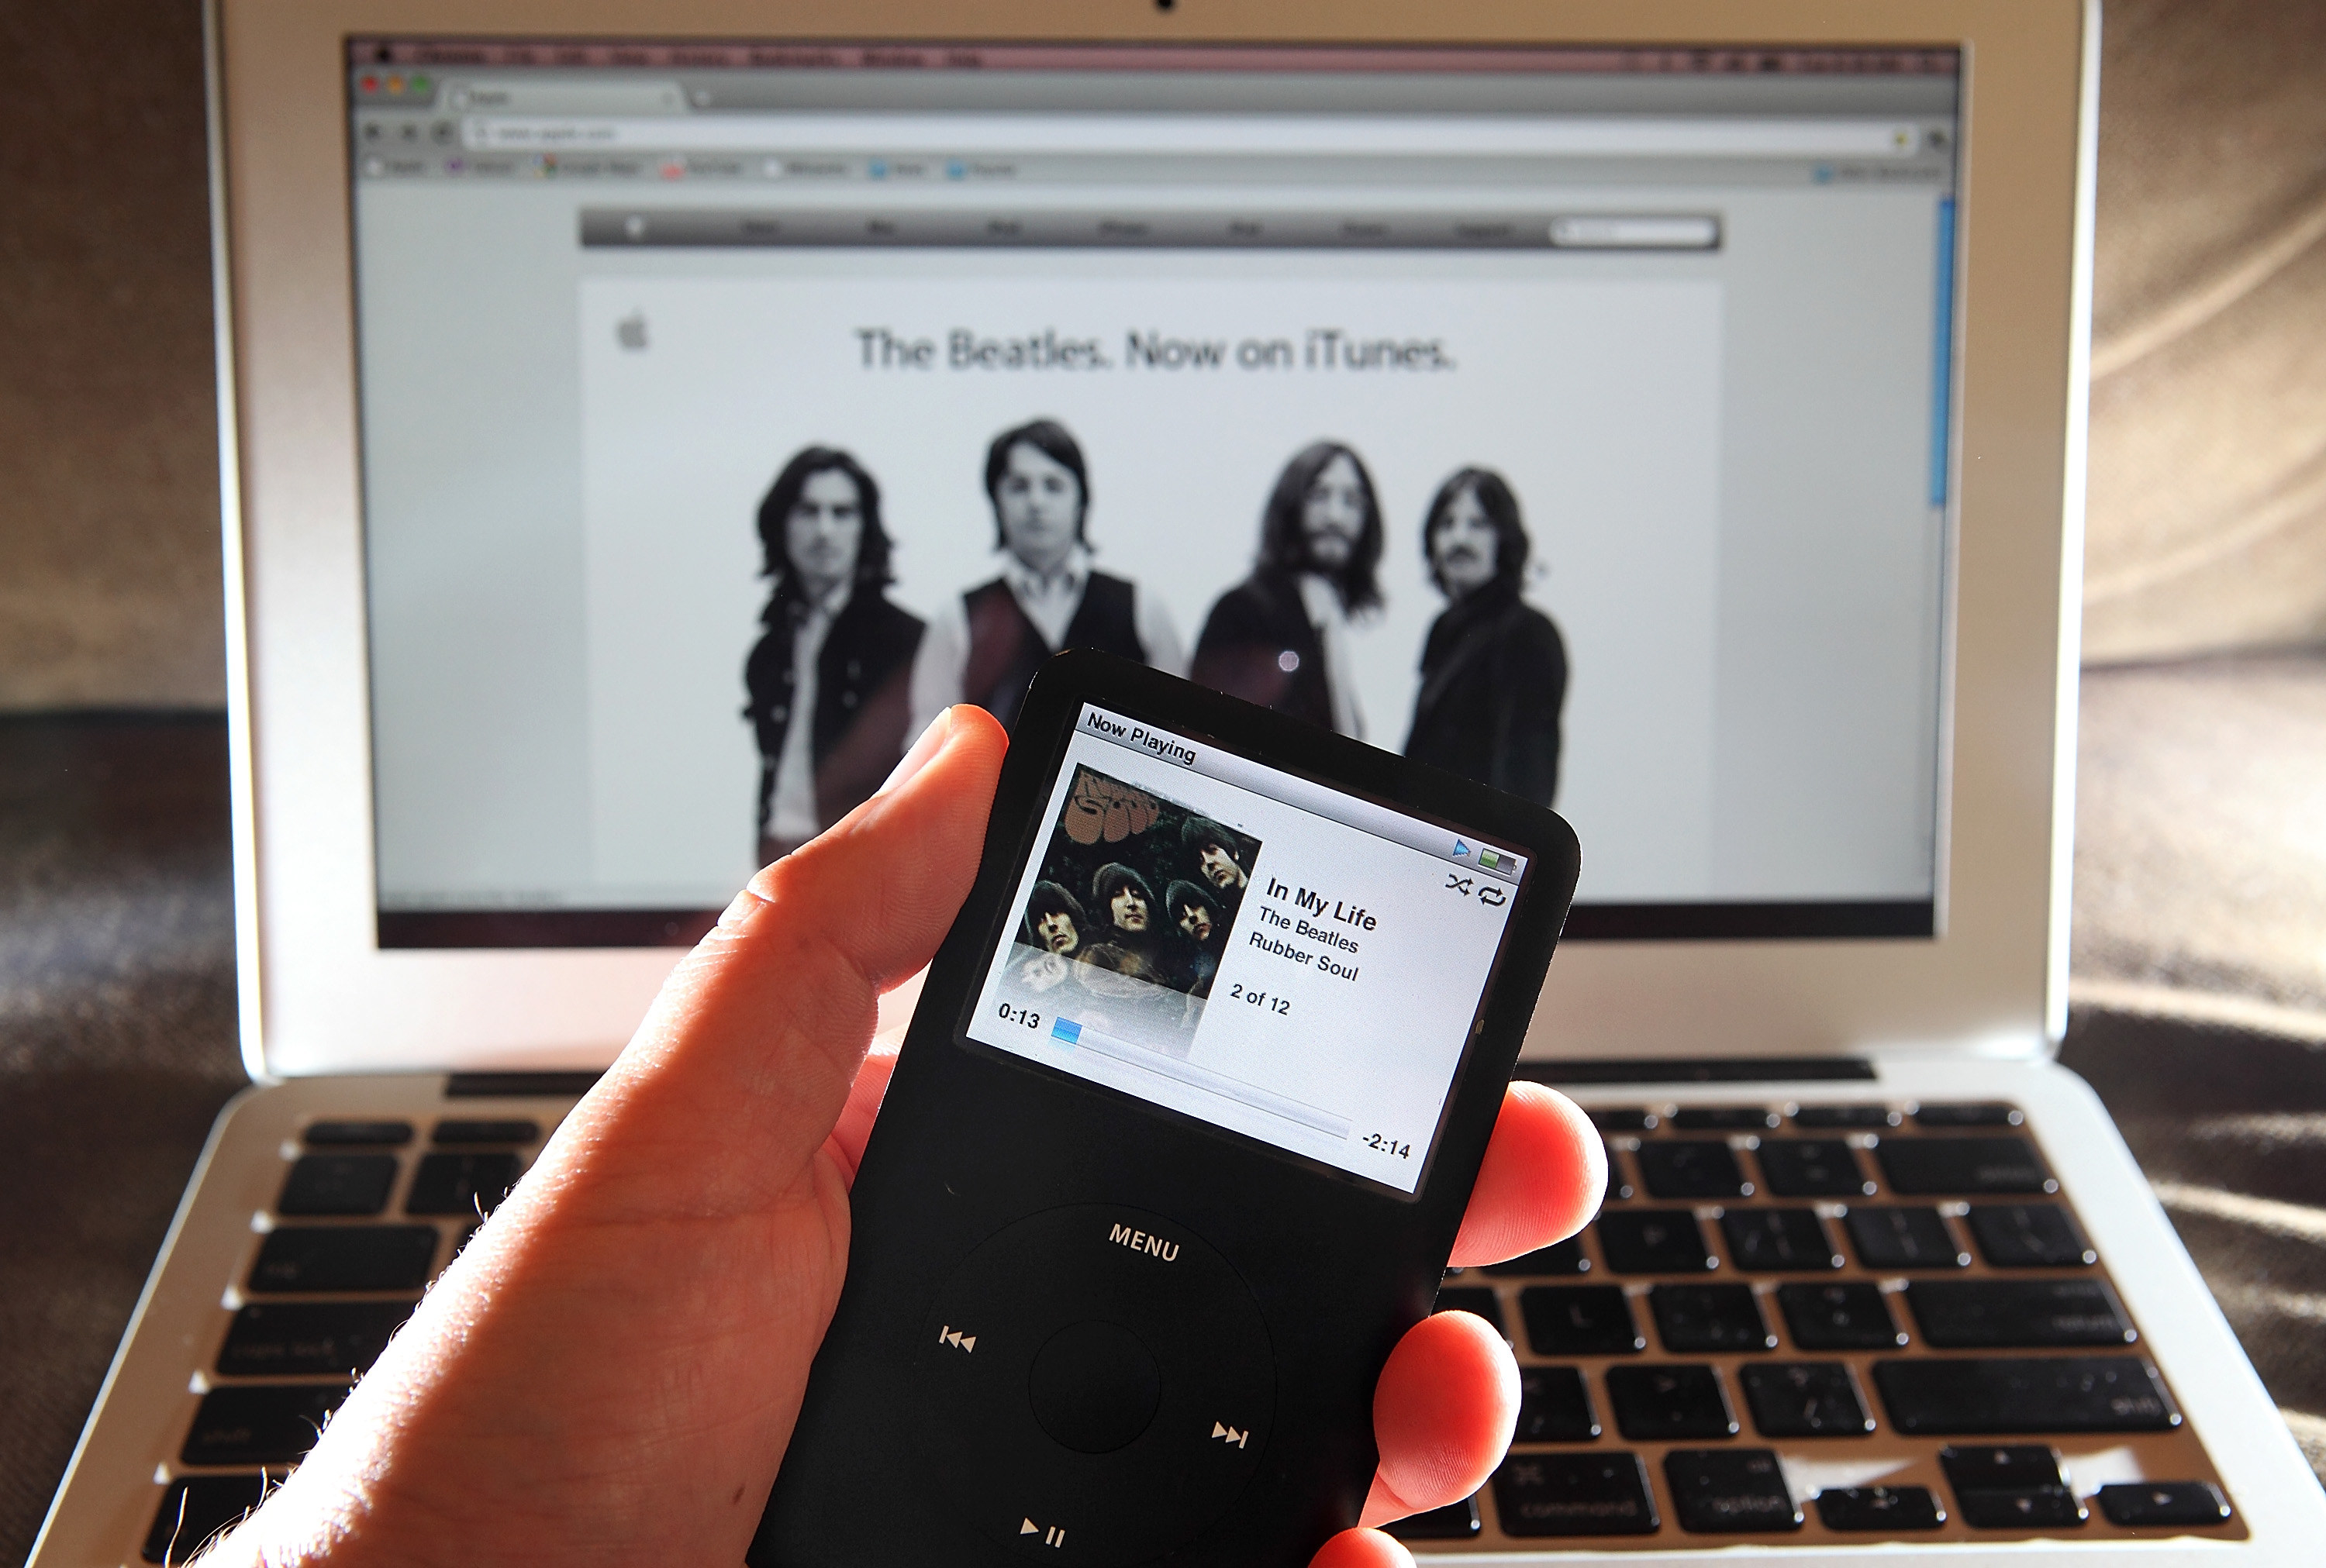 A person holds an iPod playing the Beatles in front of a Mac with iTunes open